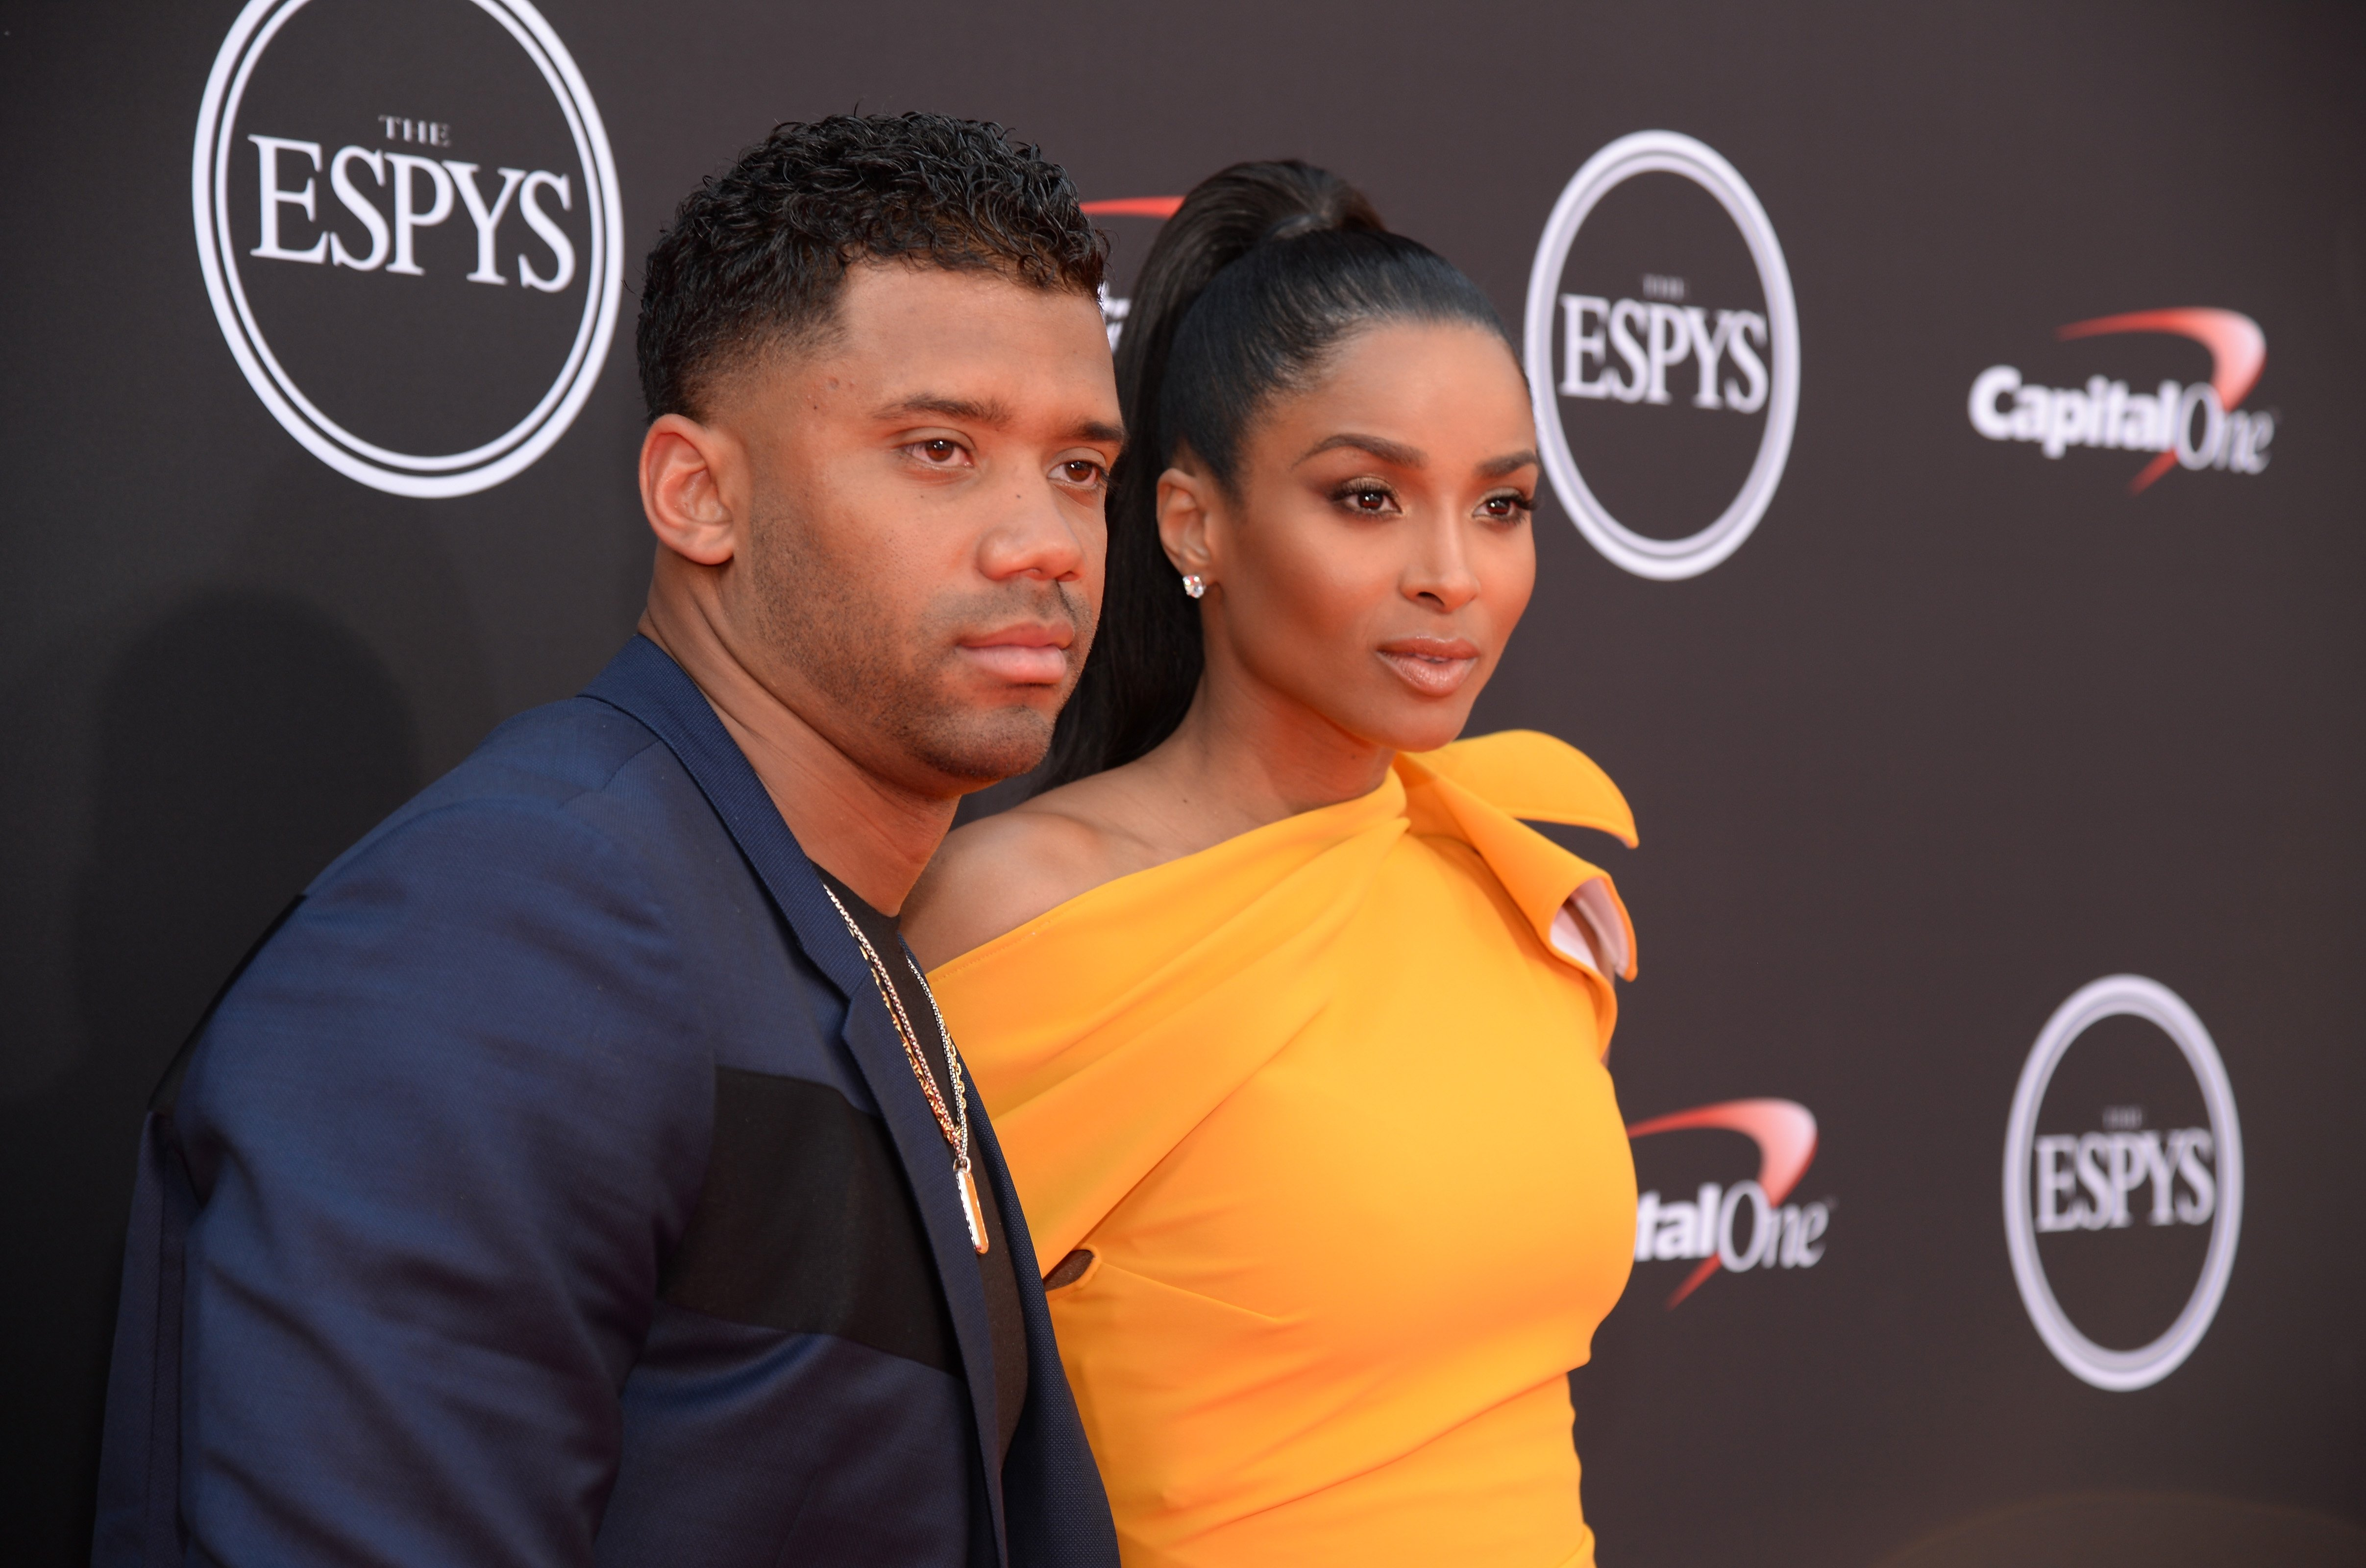 Ciara and Russell Wilson at the ESPY Awards Red Carpet Show at Microsoft Theater in Los Angeles, California on July 18, 2018 | Photo: Getty Images